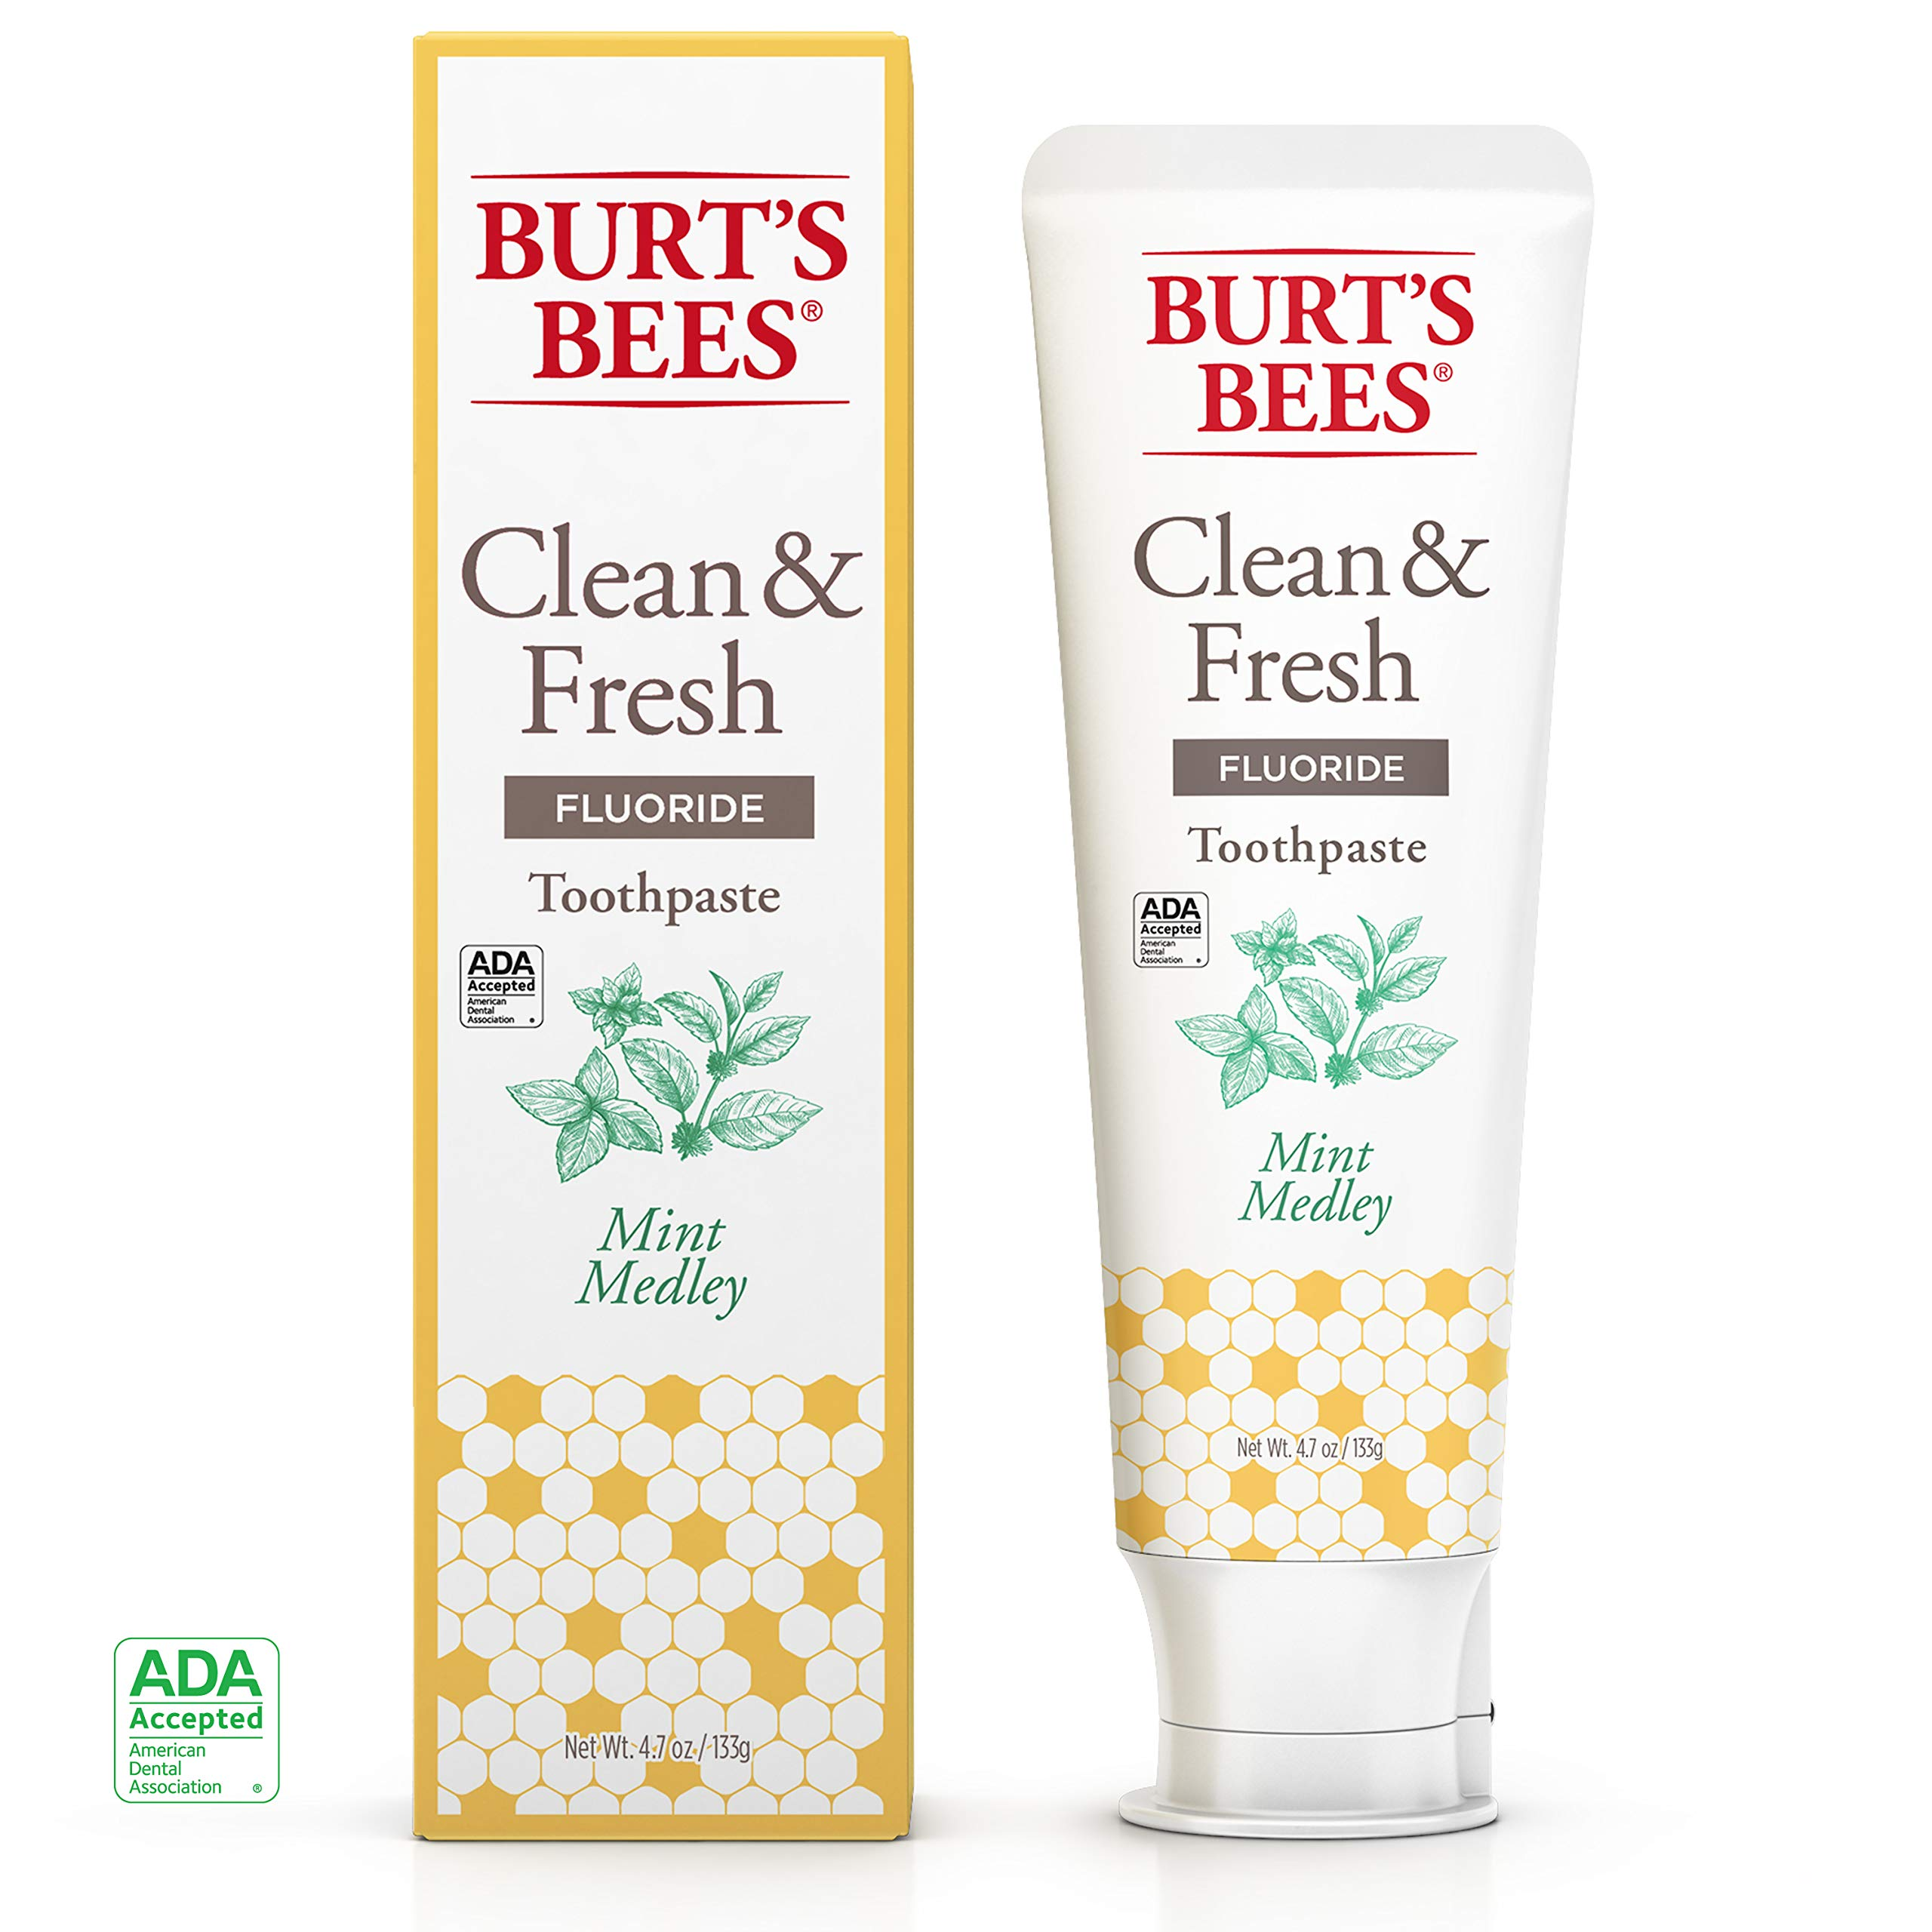 Burt's Bees Toothpaste, Natural Flavor With Fluoride Clean & Fresh, Mint Medley, 4.7oz 3 Count